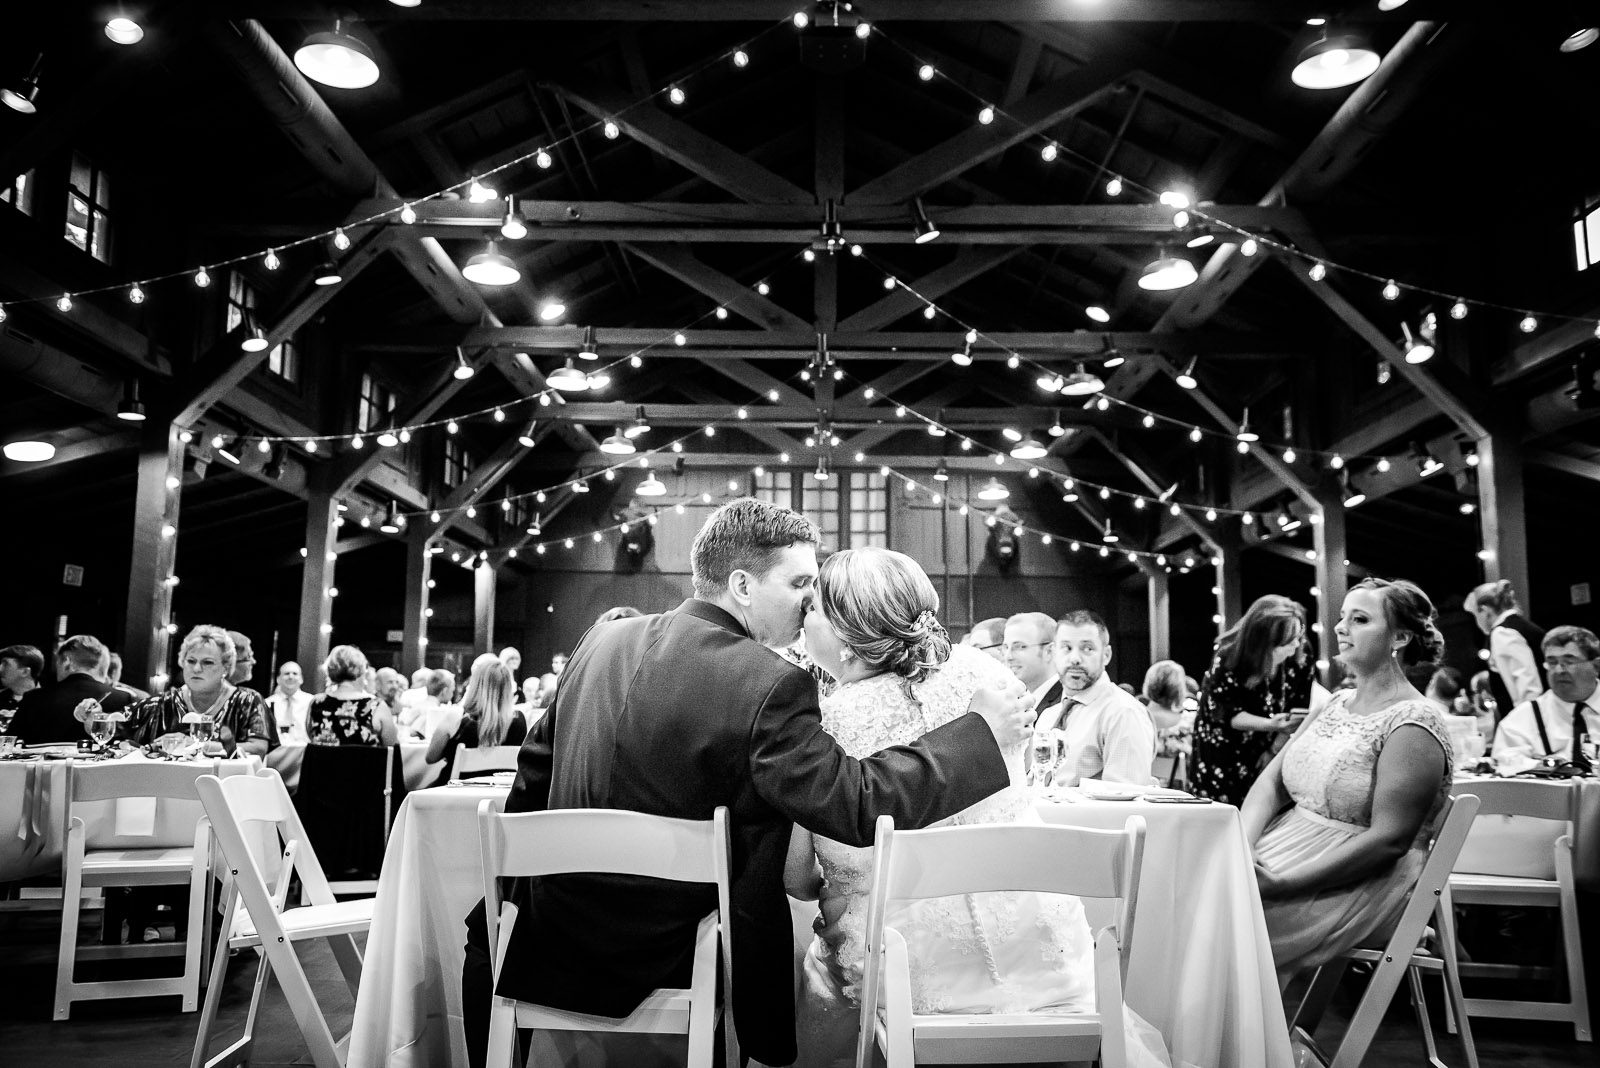 Eric_and_Christy_Photography_Blog_2016_Best_Wedding_Moments-22